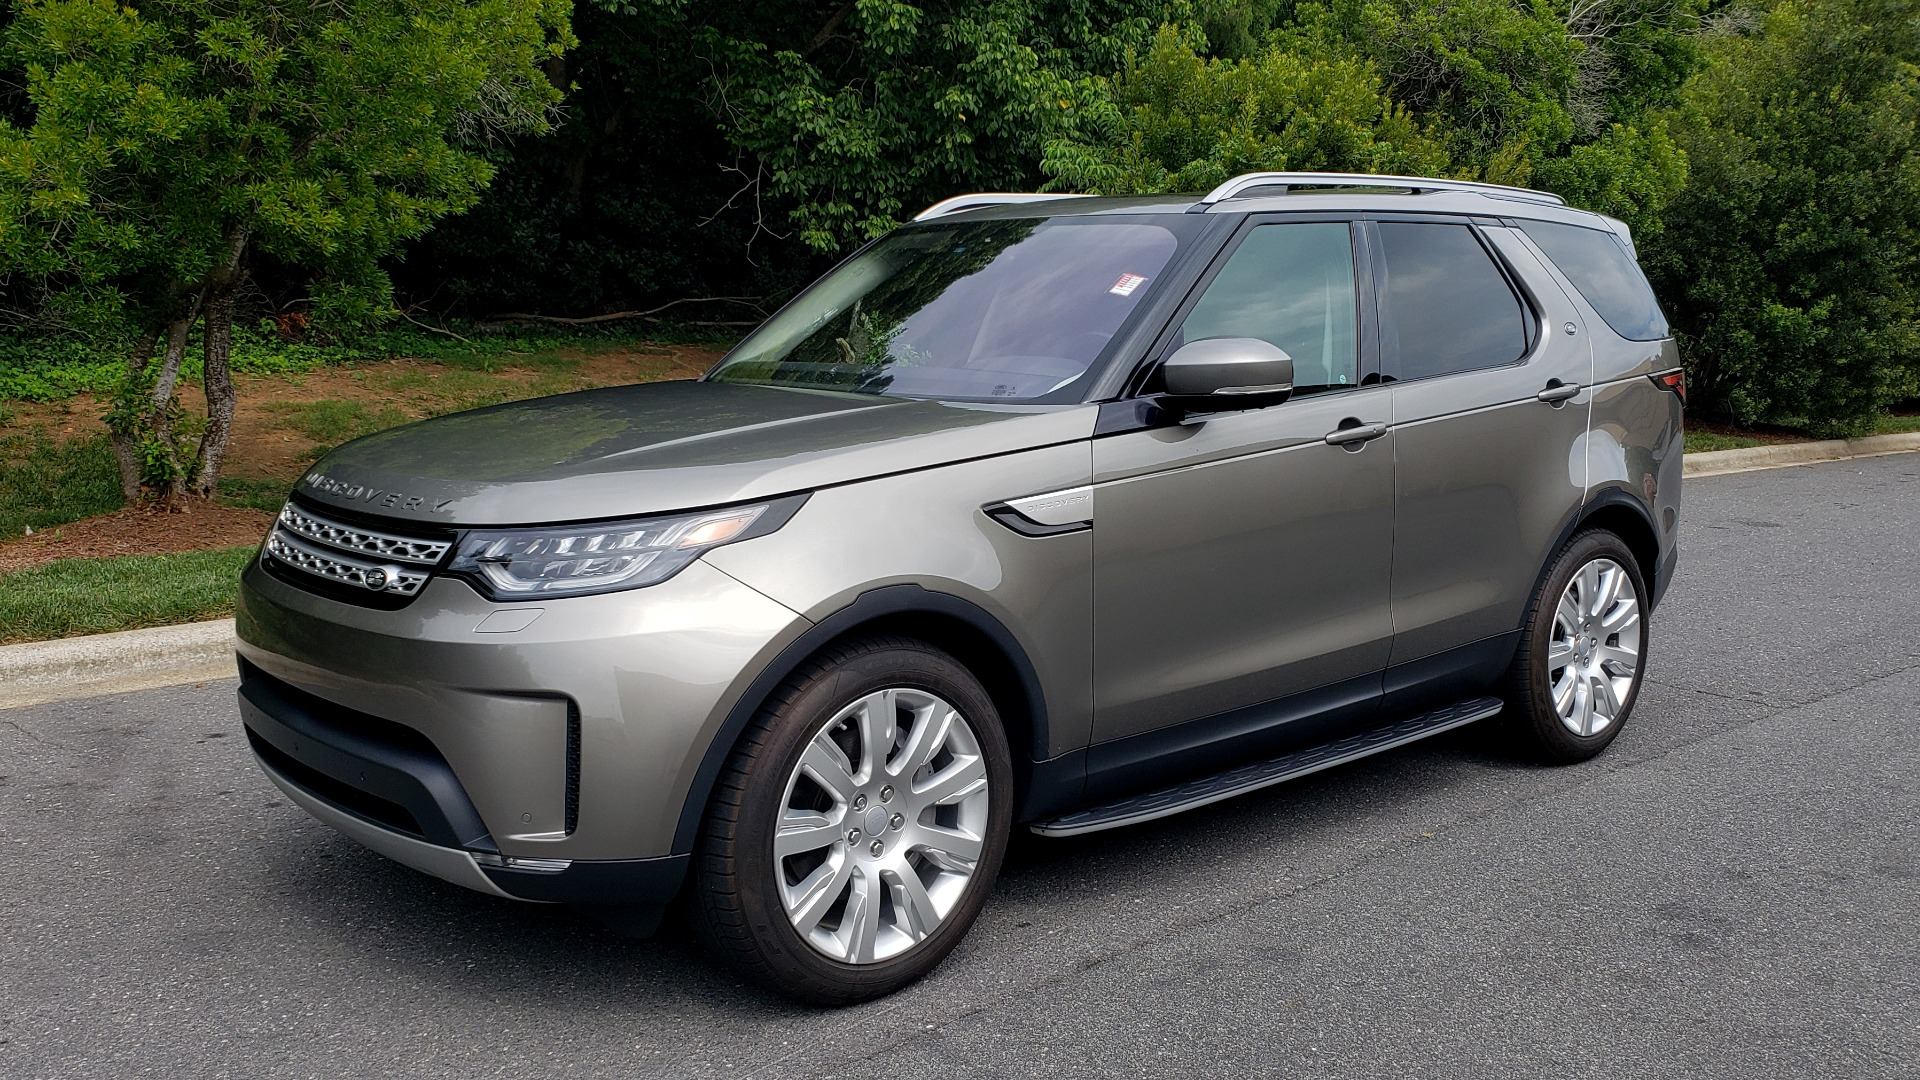 Used 2018 Land Rover DISCOVERY HSE / NAV / DRV PKG / VISION / CLIMATE / CAPABILITY / 3-ROW for sale Sold at Formula Imports in Charlotte NC 28227 1